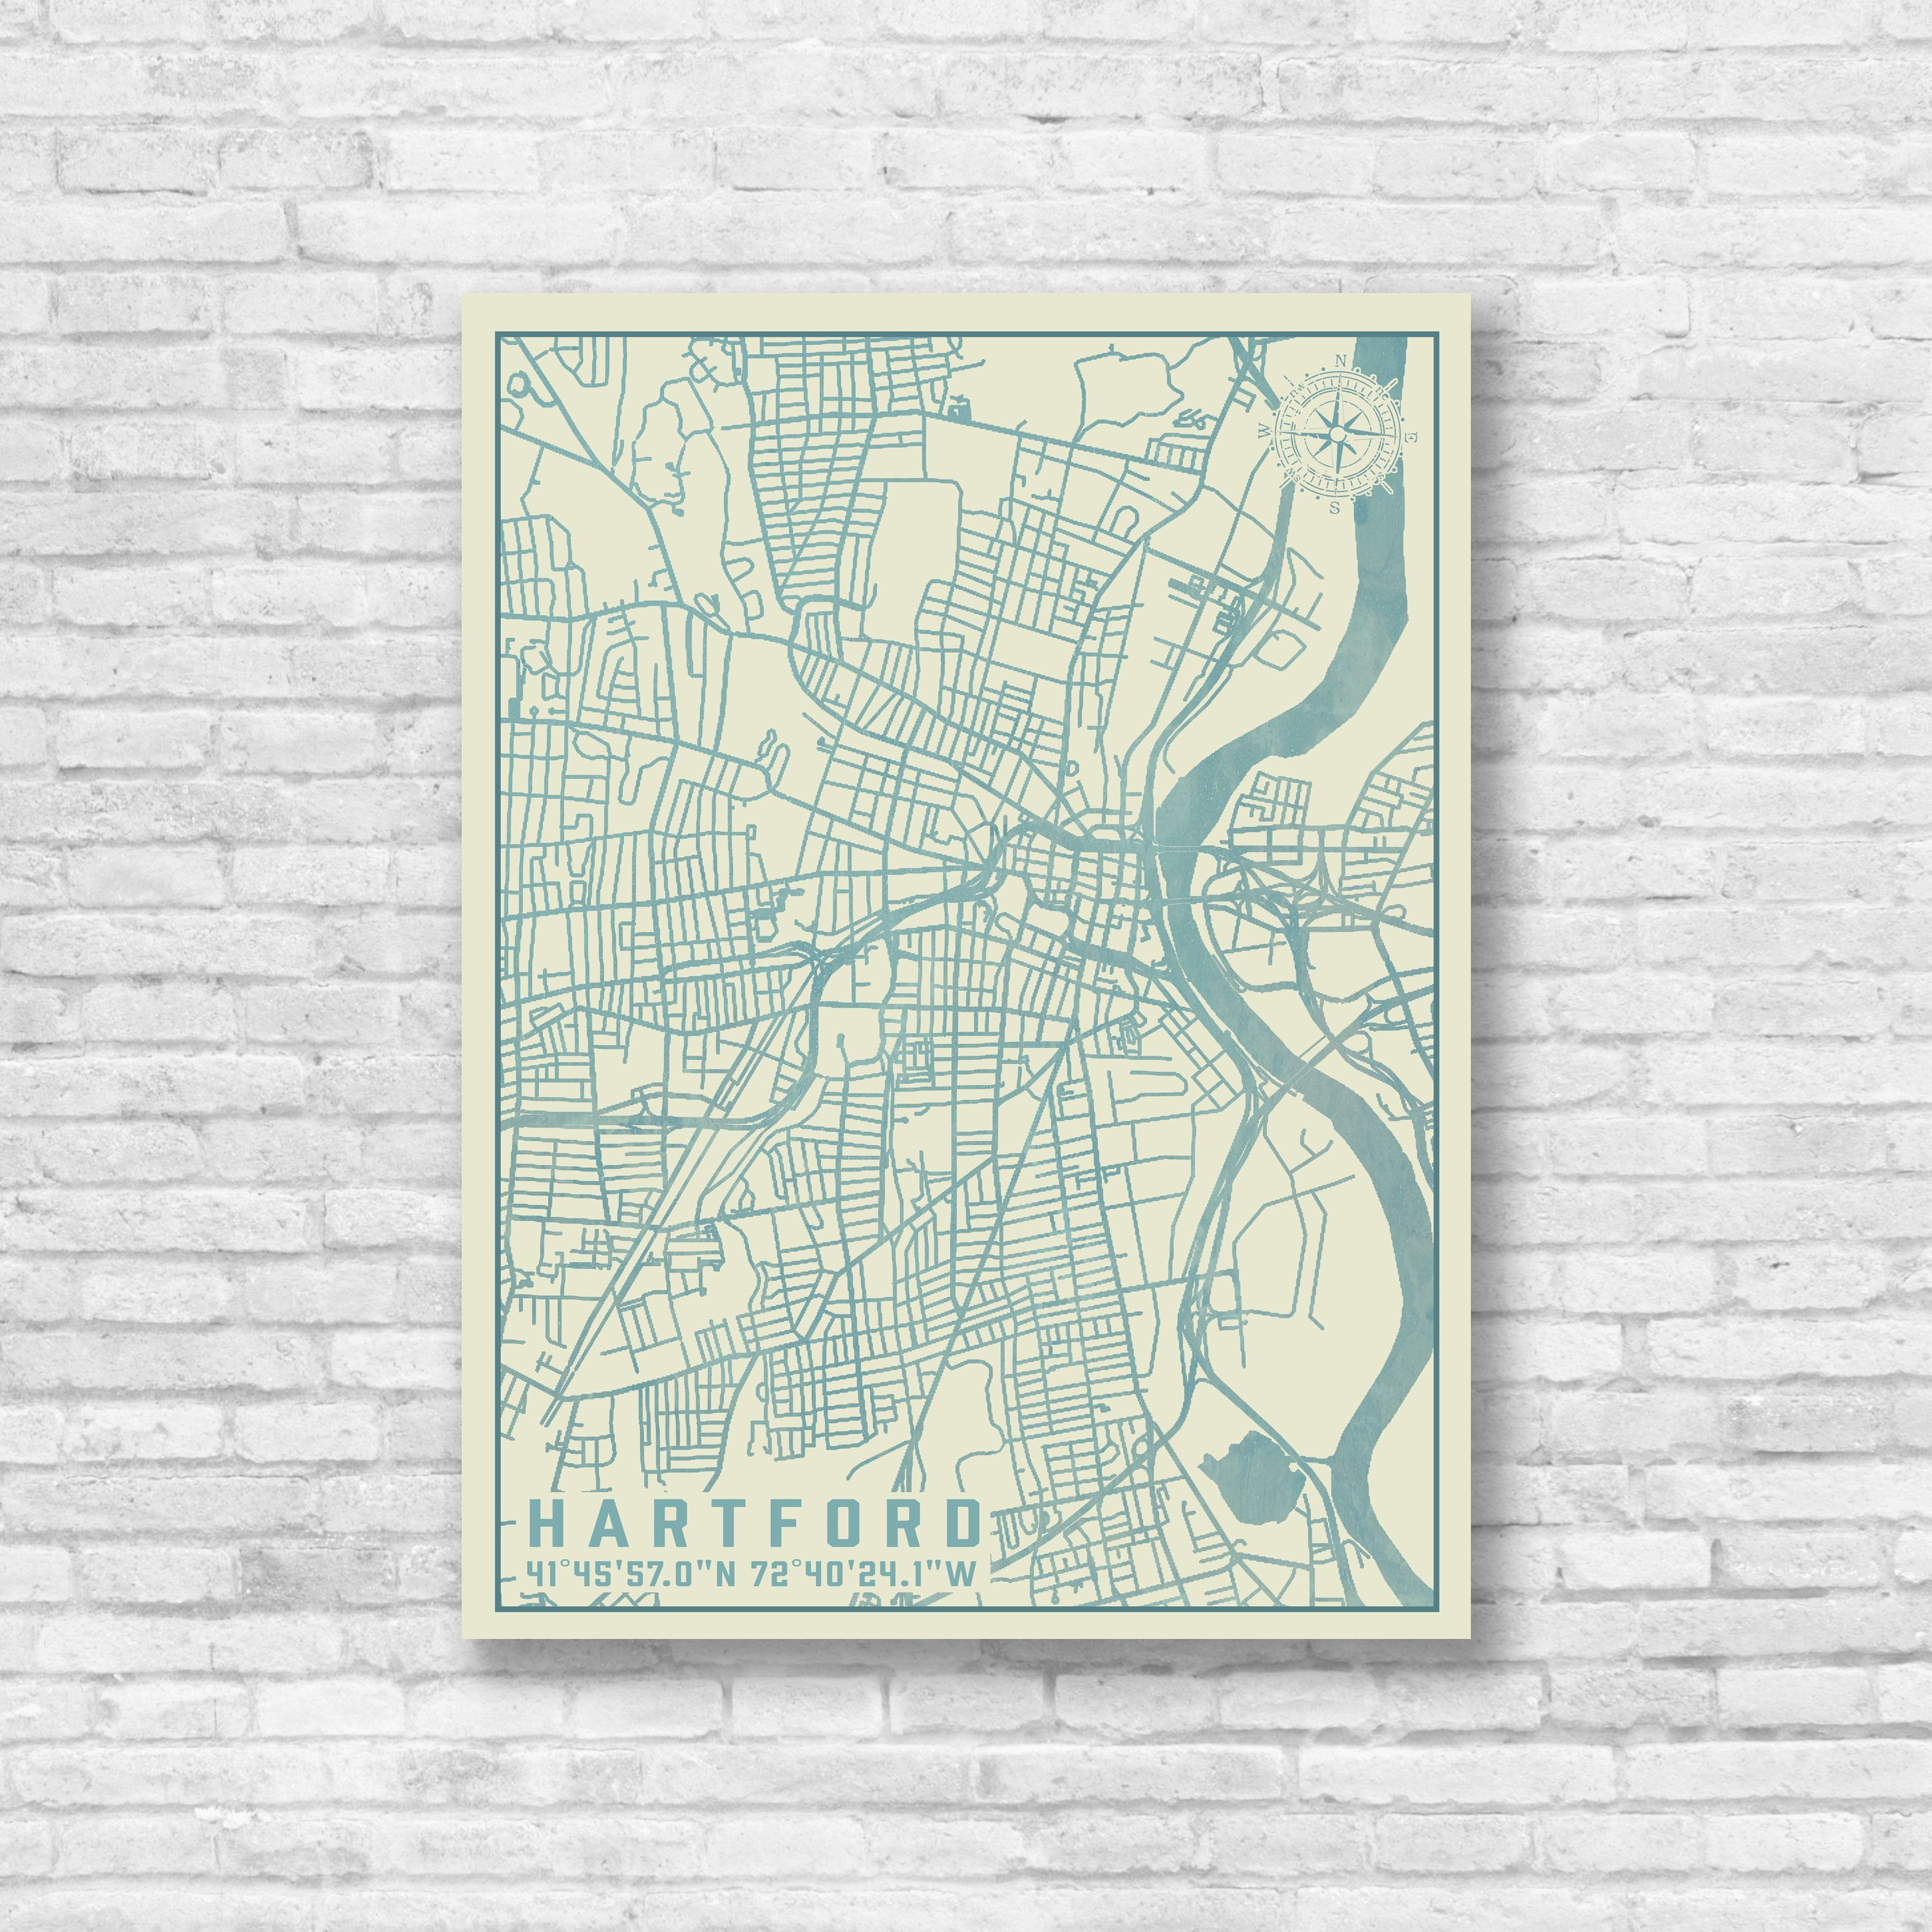 Hartford Map, Hartford City Map, Map Wall Art, Hartford ... on street map west haven connecticut, street map stamford connecticut, street map enfield connecticut, parks hartford connecticut, street map hartford illinois, street map newtown connecticut, street maps of hartford county, directions hartford connecticut,